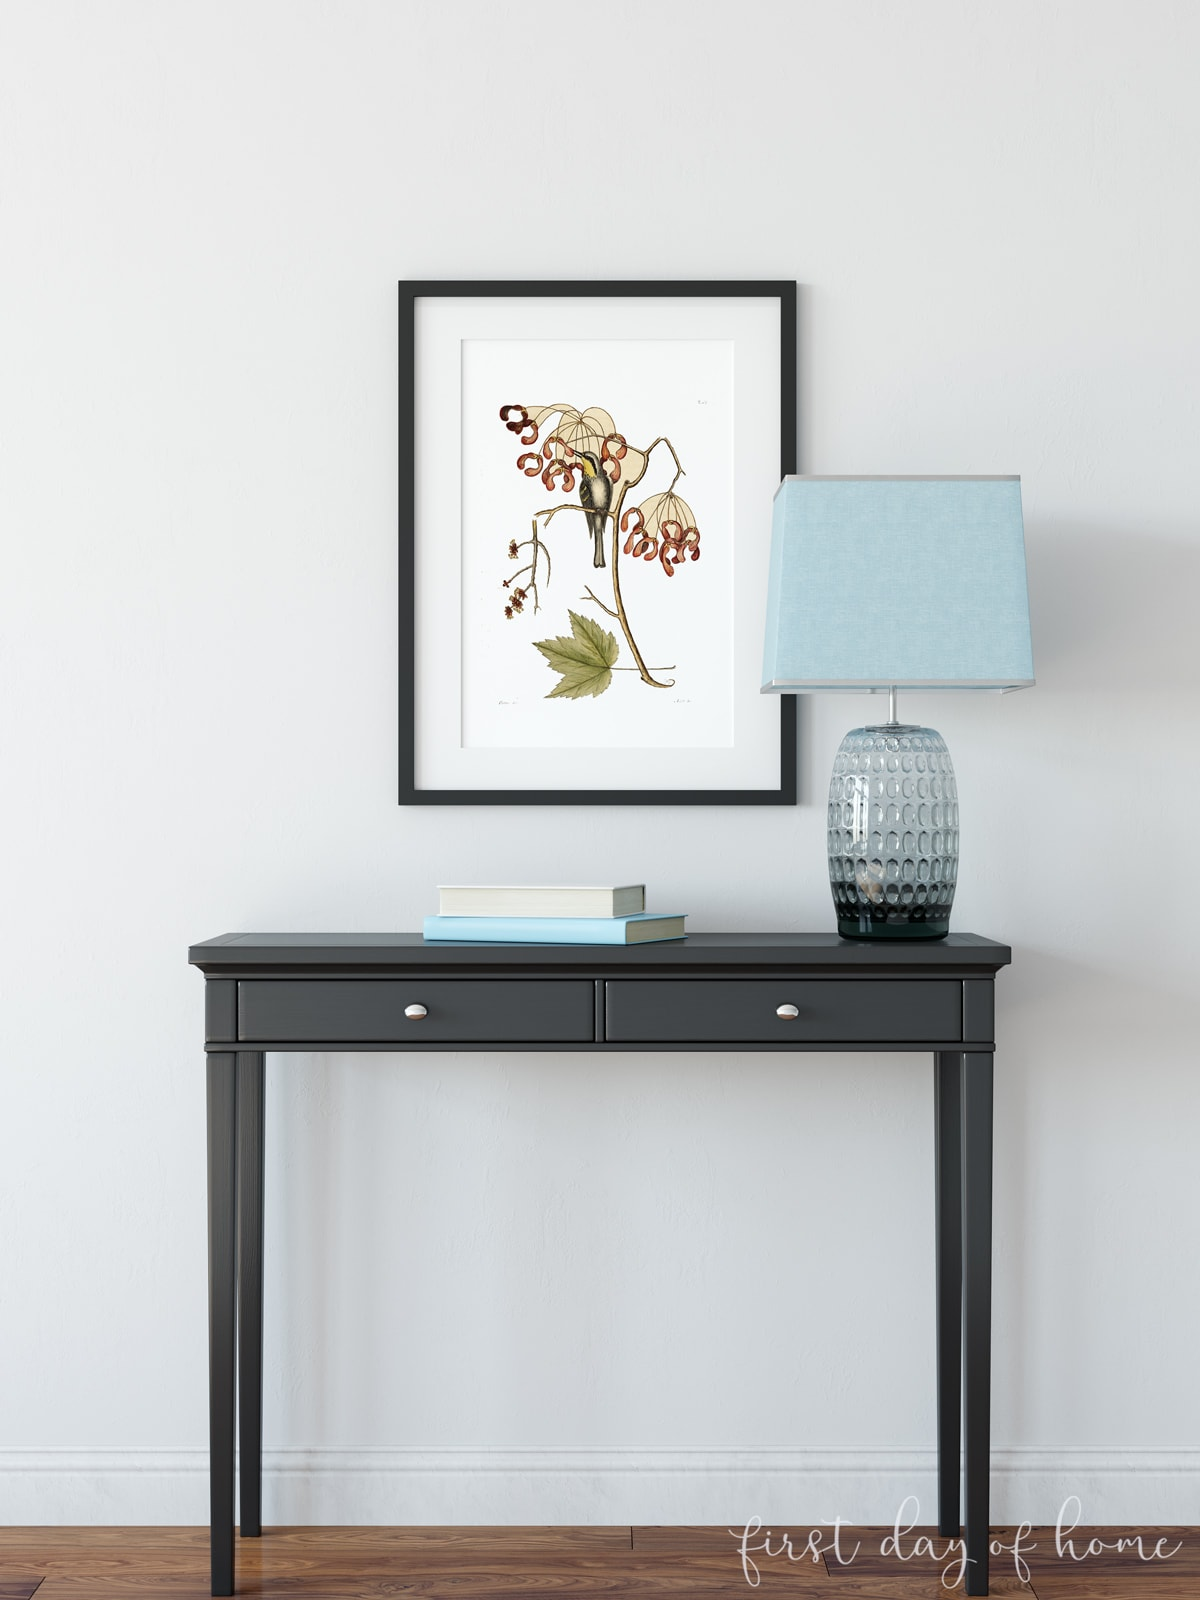 Vintage botanical art print hanging on wall above black desk with lamp and books